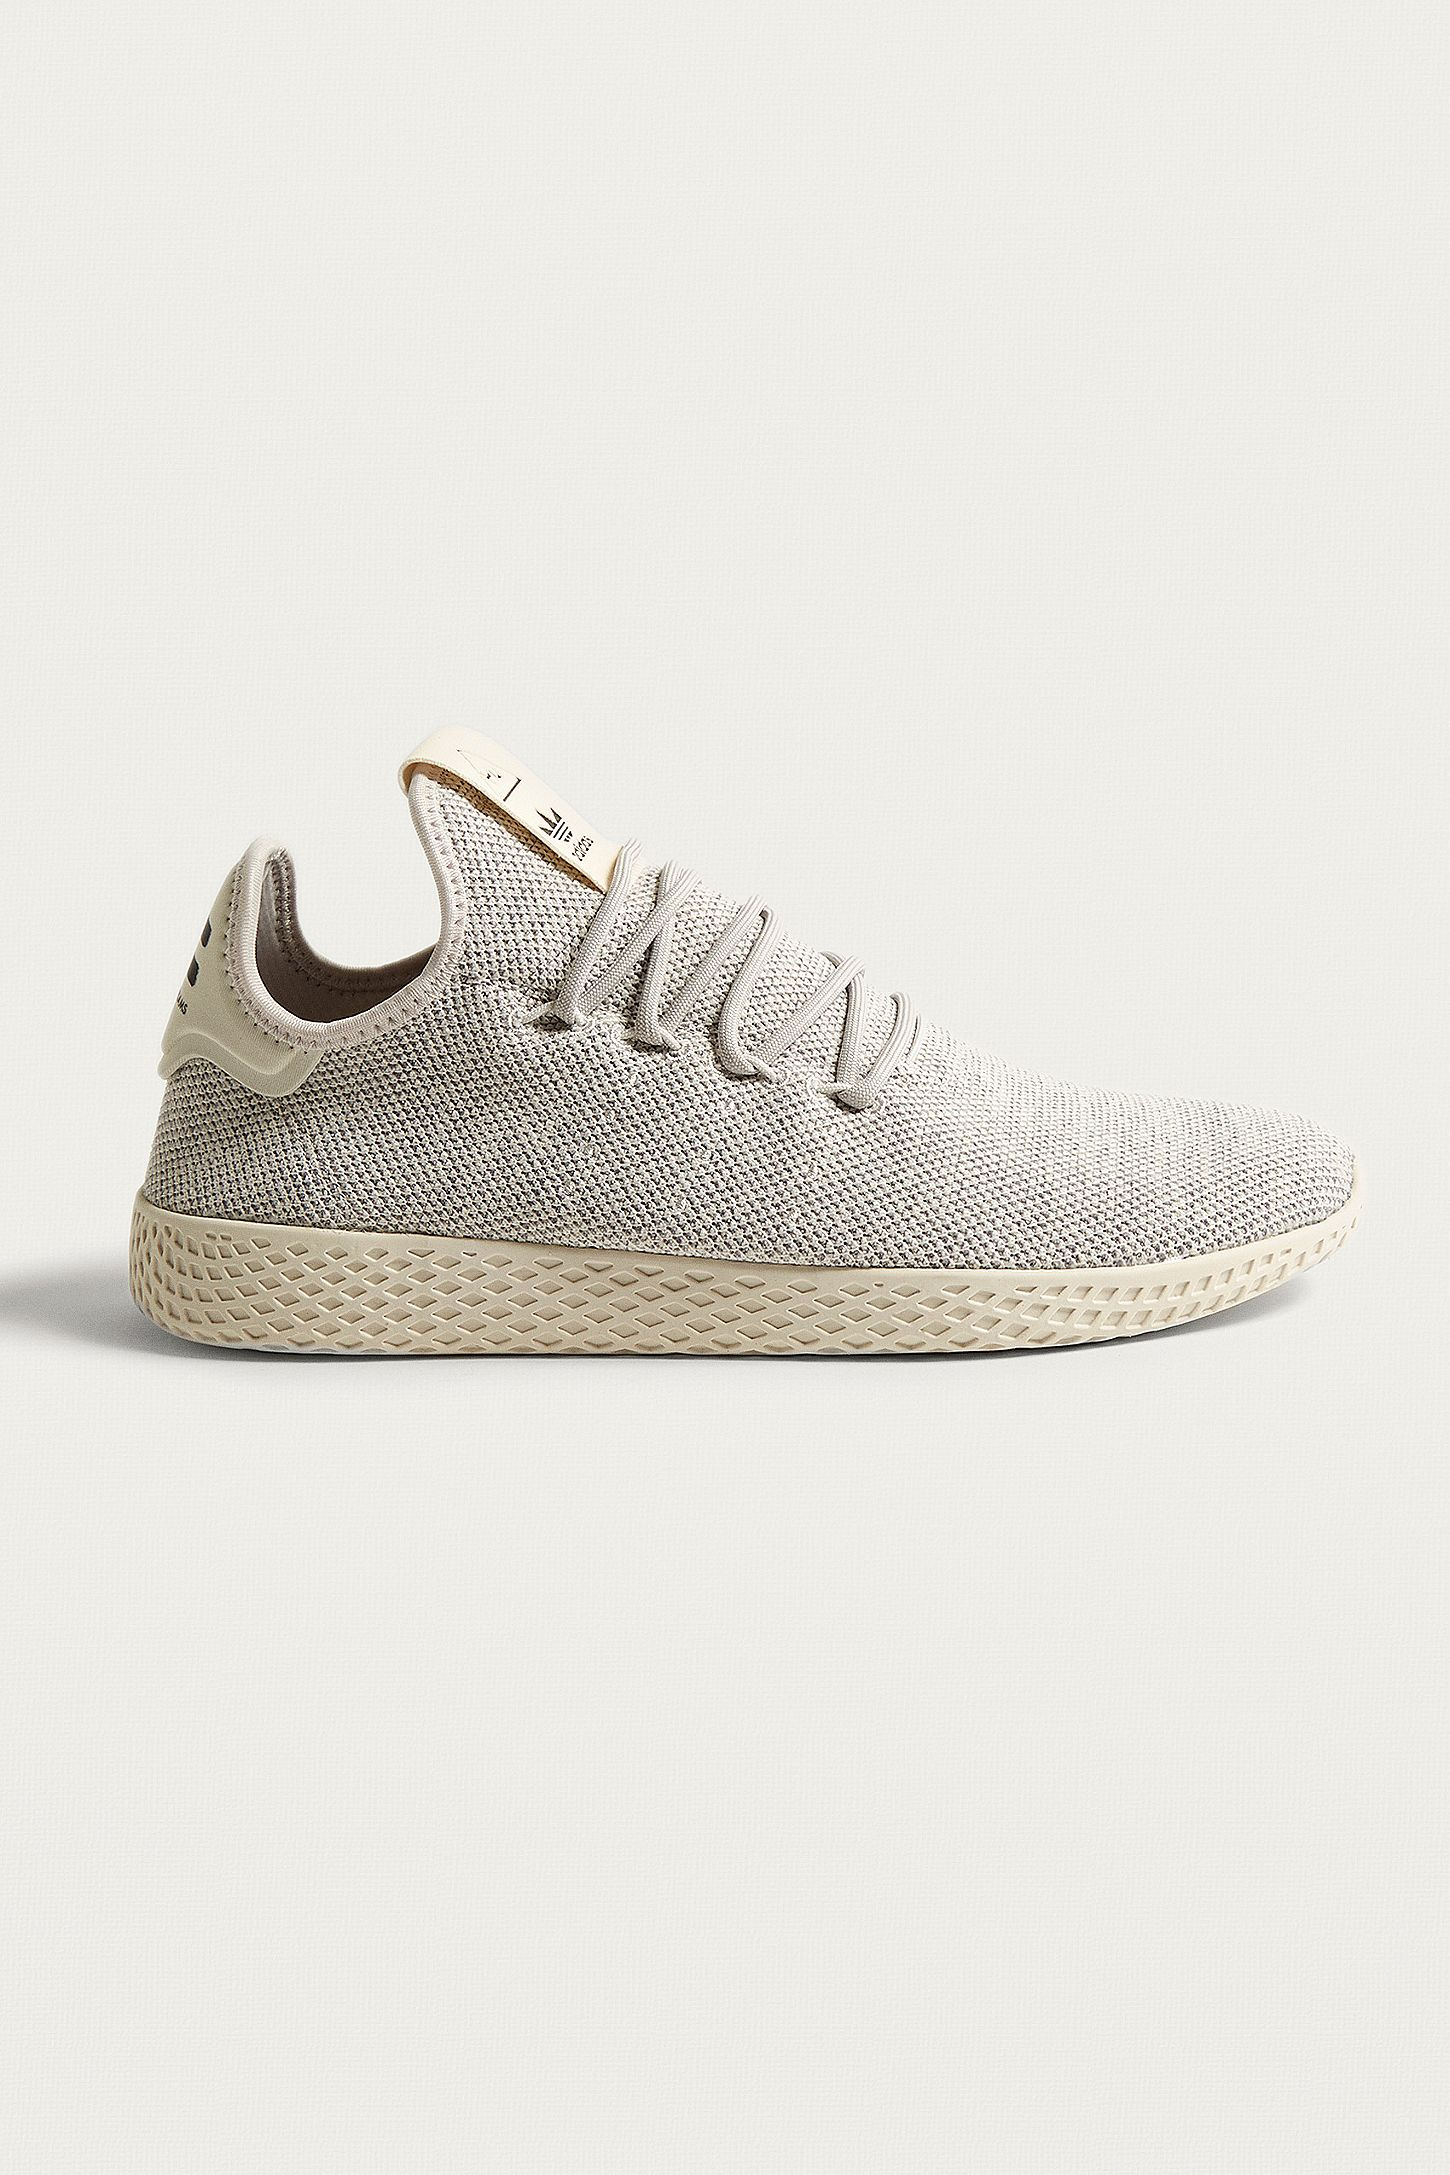 e0f6cb94a adidas Pharrell Williams Tennis HU Trainers. Click on image to zoom. Hover  to zoom. Double Tap to Zoom